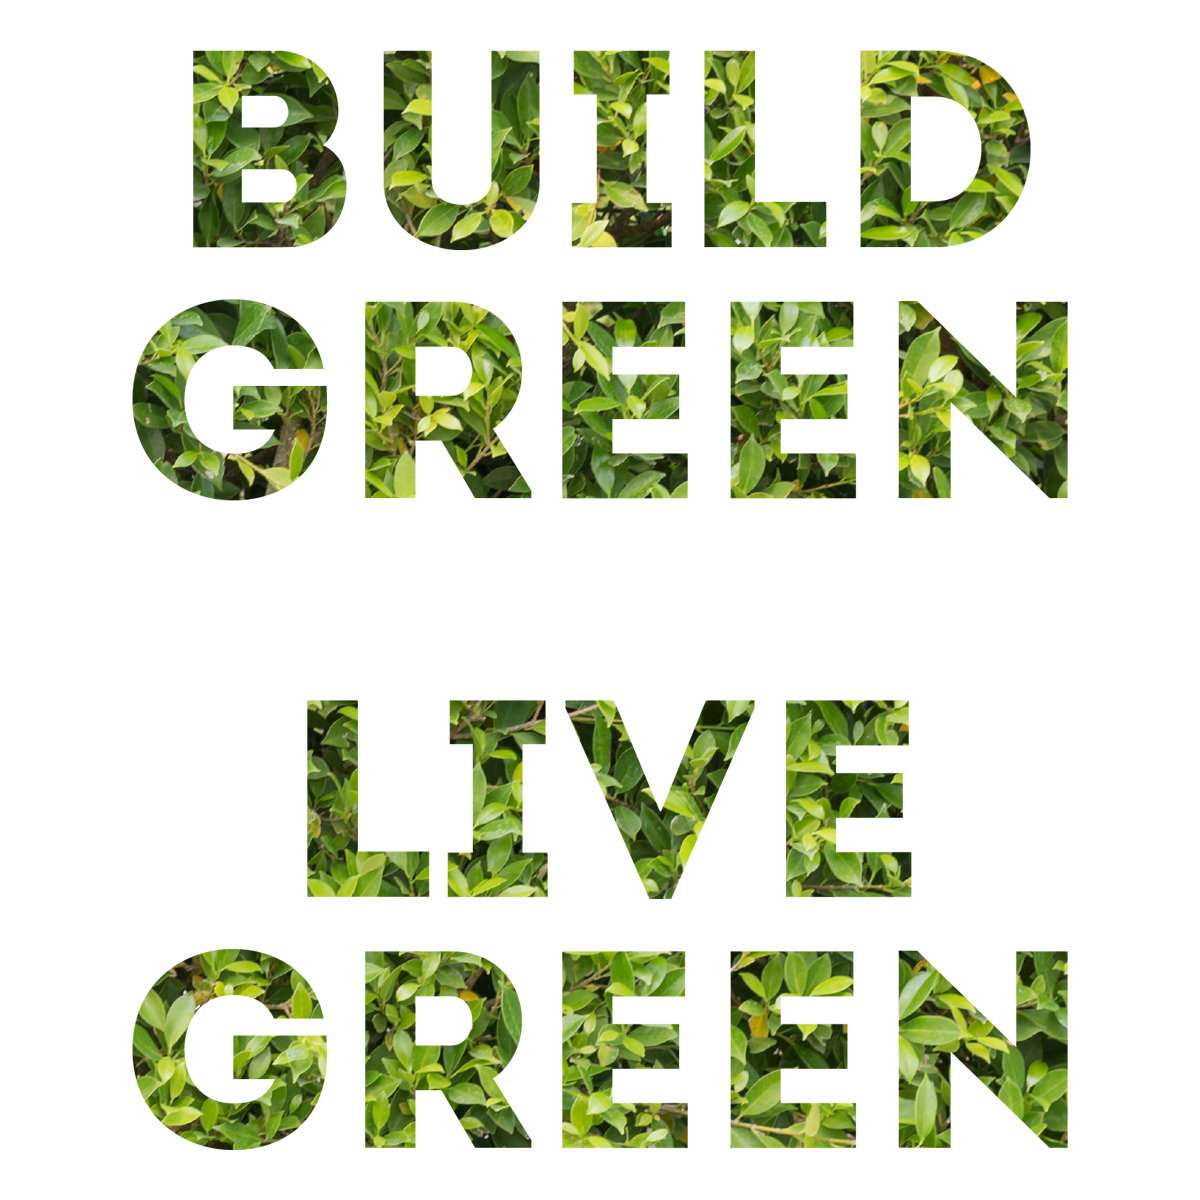 CaraGreen Launches New Green Building Podcast